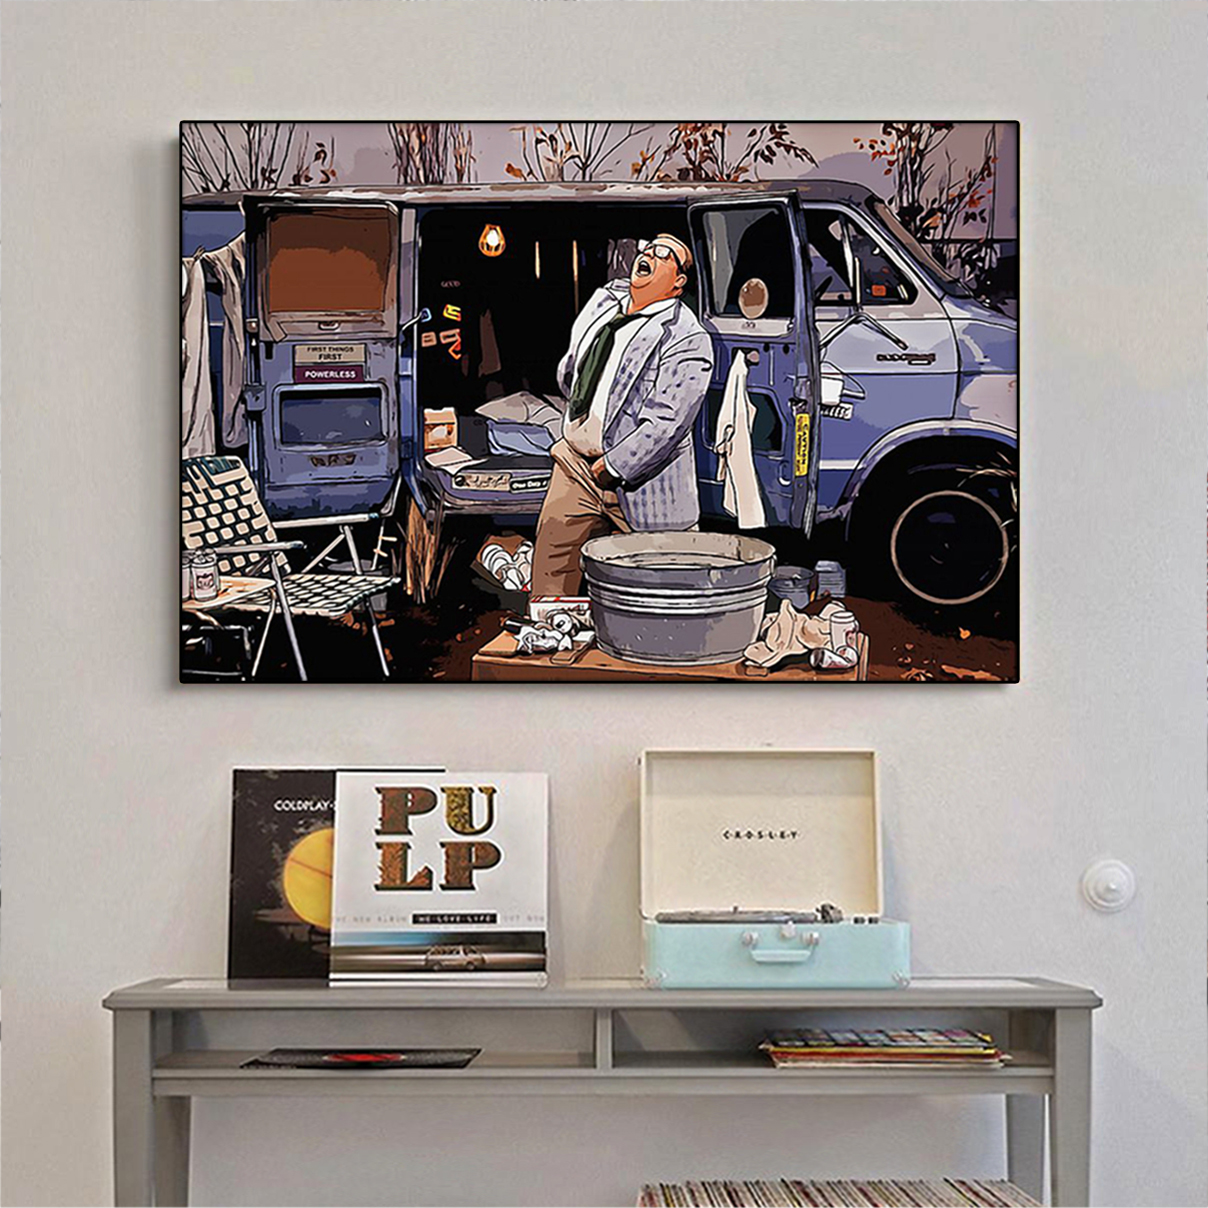 Living in a van down by the river poster A2